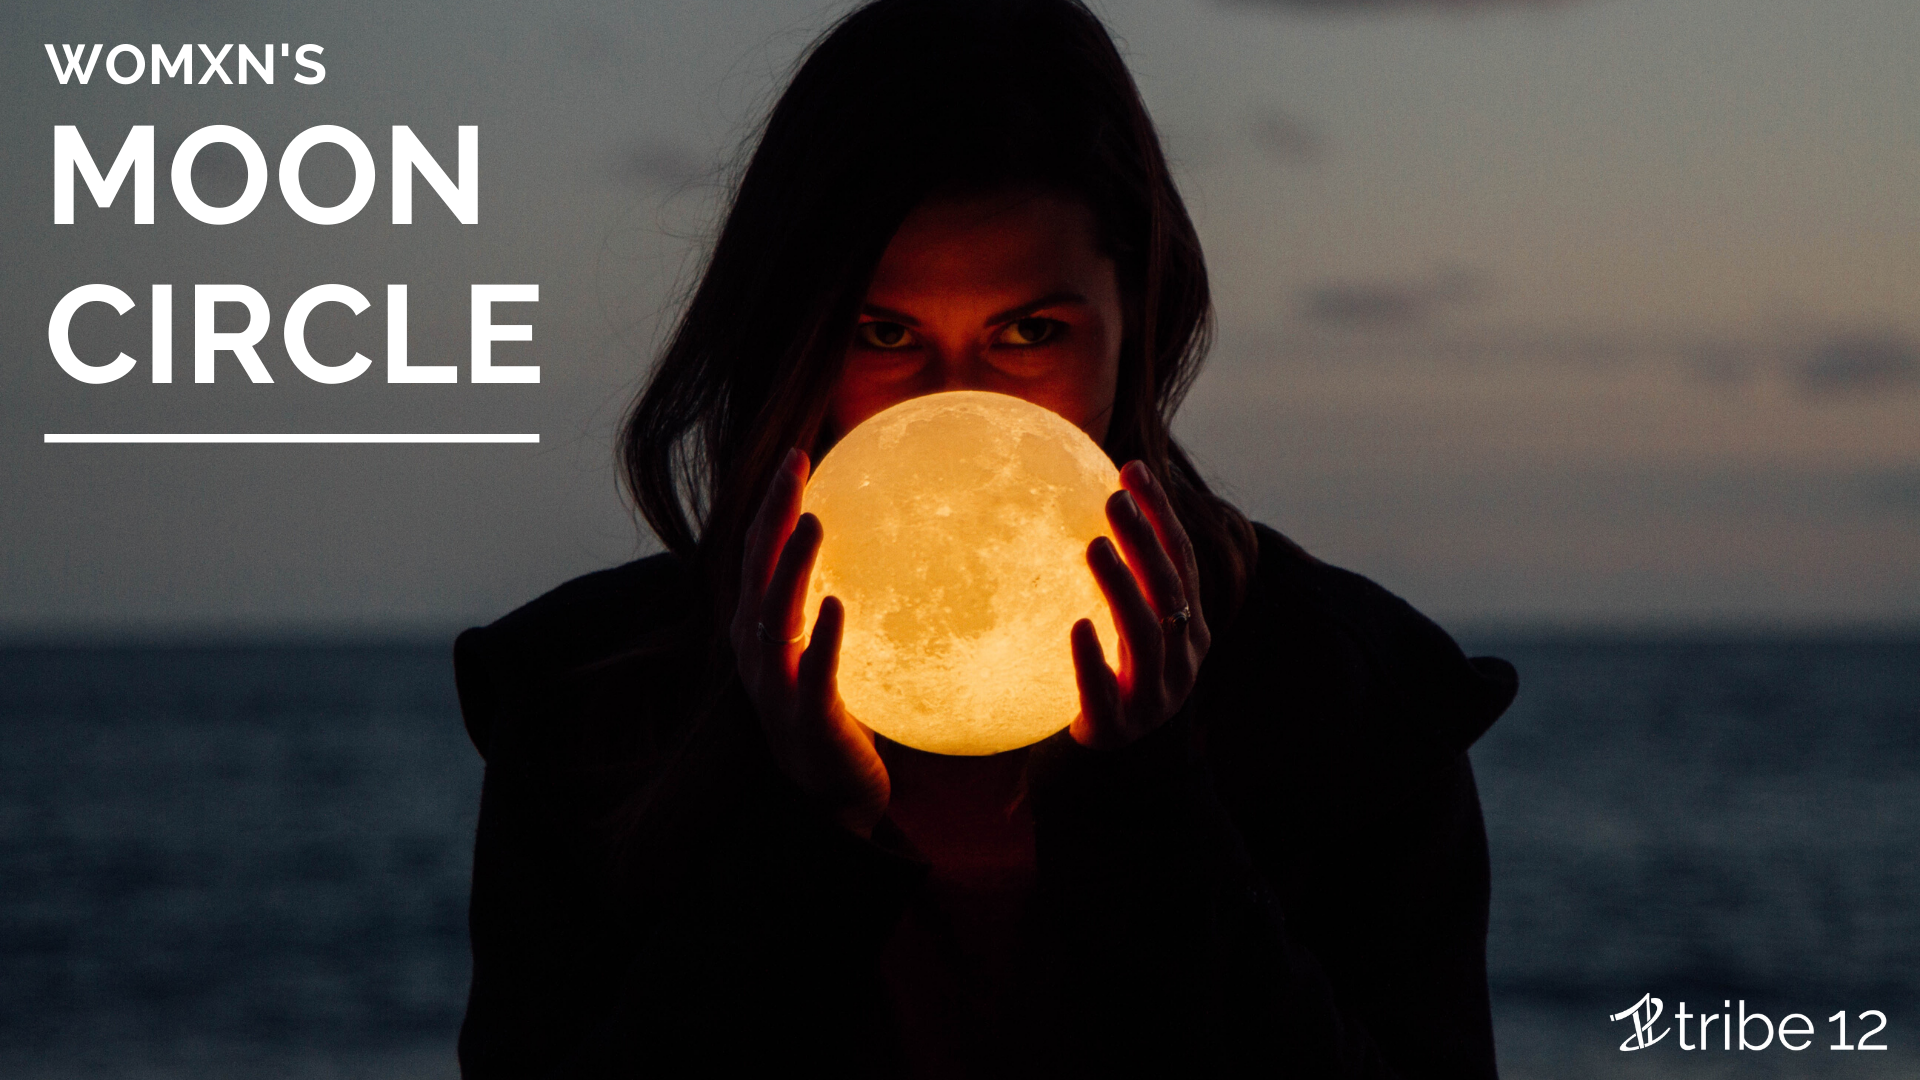 womxn's moon circle written over a photo of a woman holding a lit moon